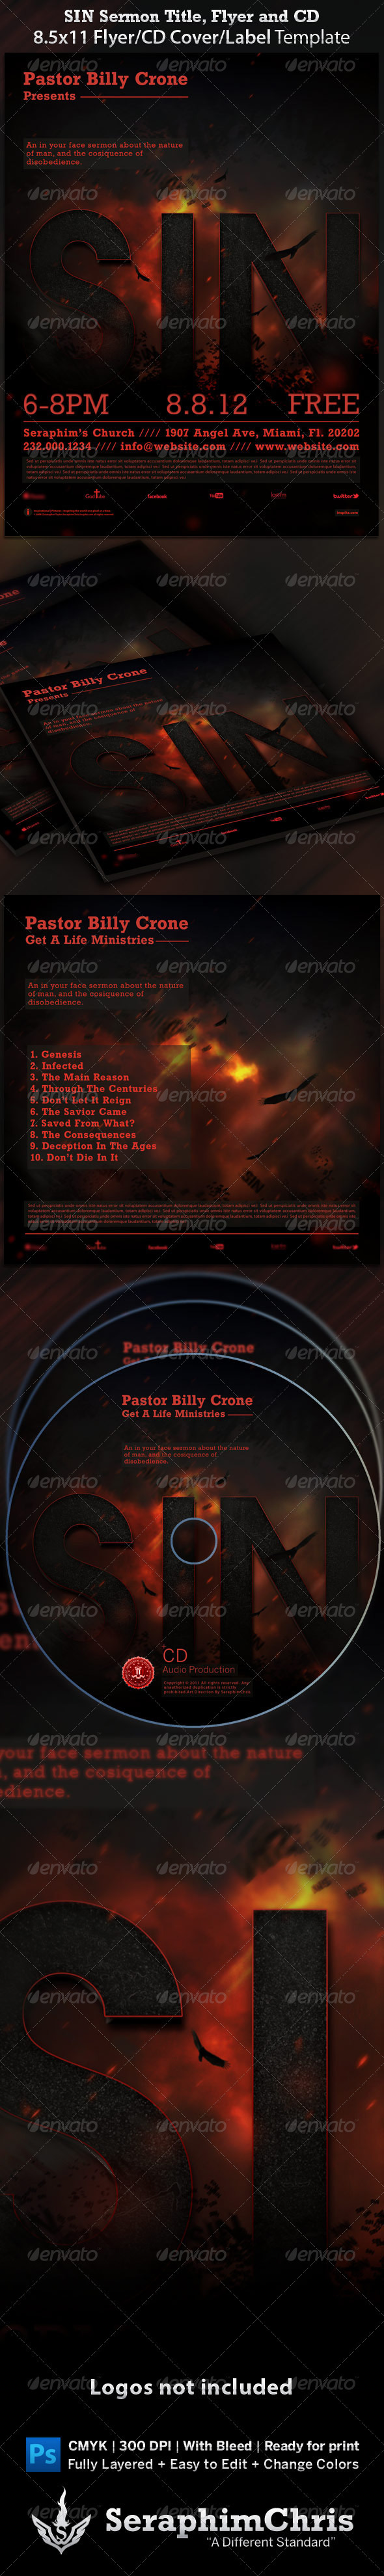 Graphic River Sin Sermon Title Flyer and CD Cover Template Print Templates -  Flyers  Church 1403791